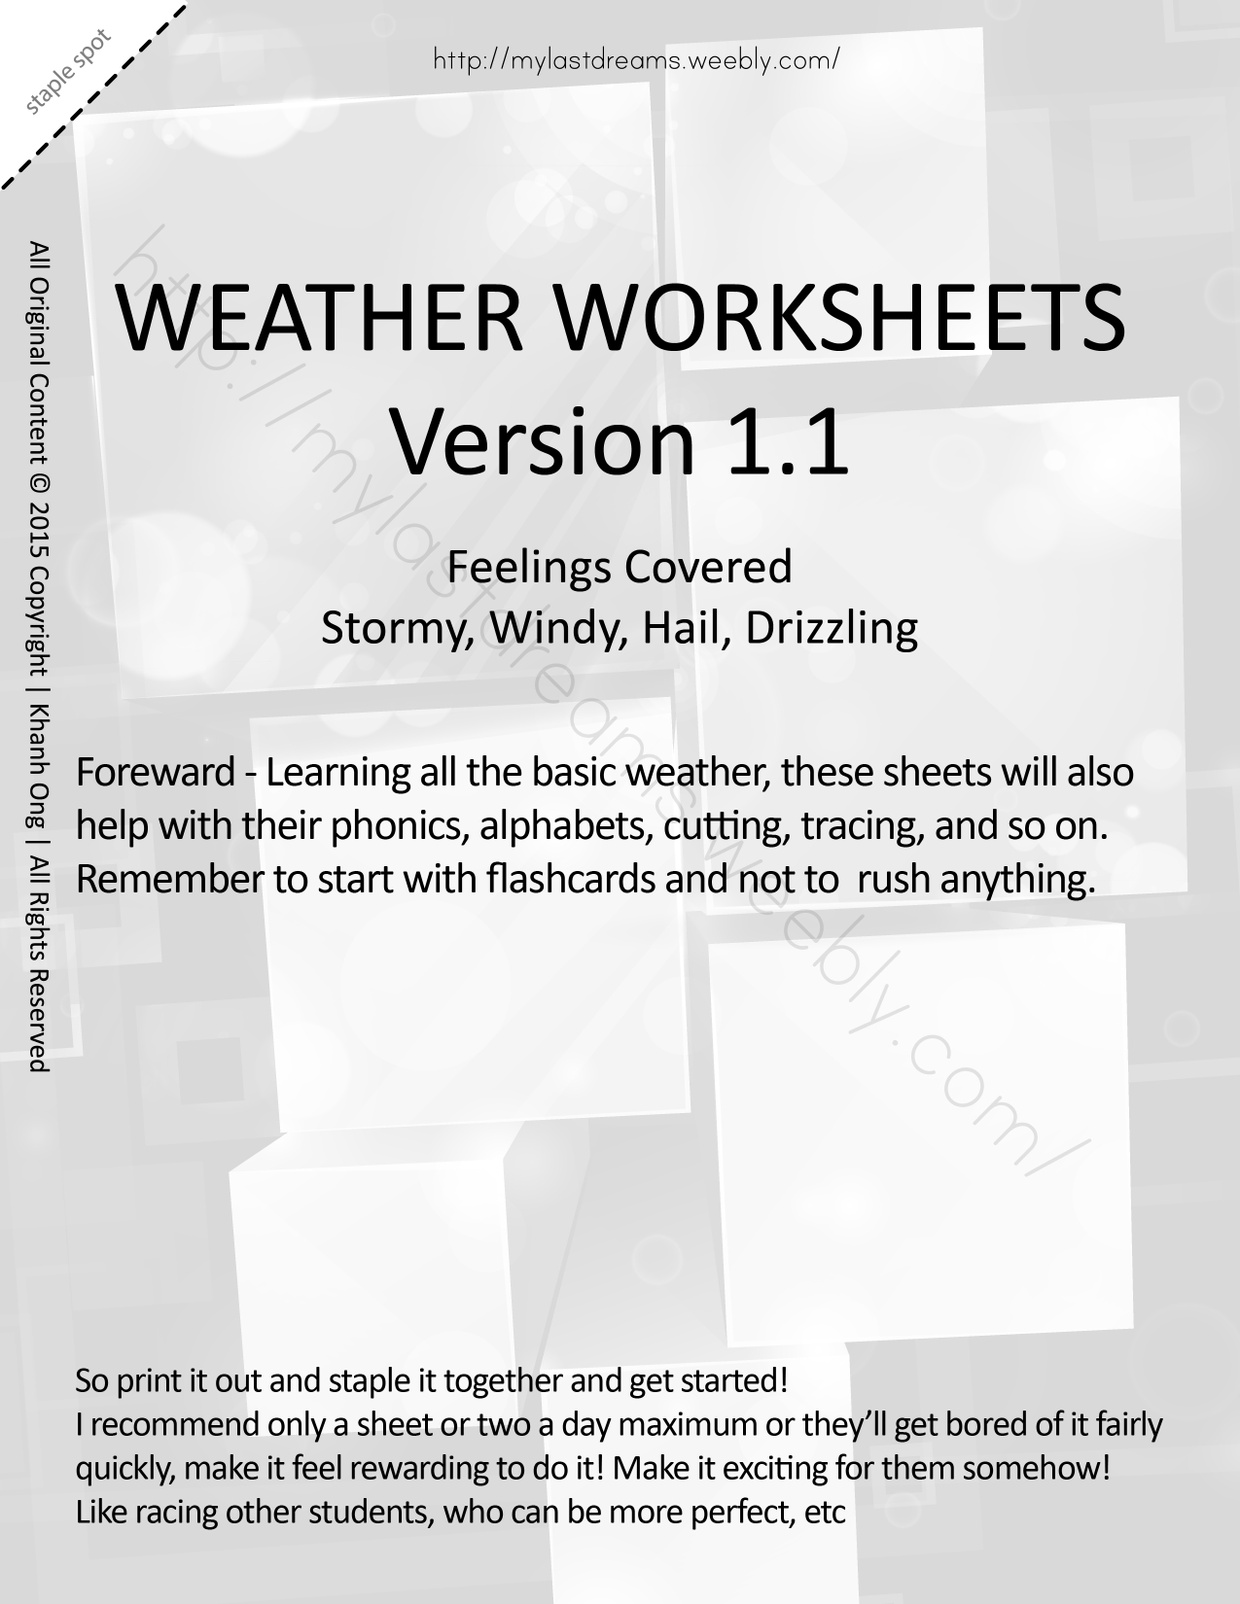 MLD - Basic Weather Worksheets - Part 2 - Letter Sized